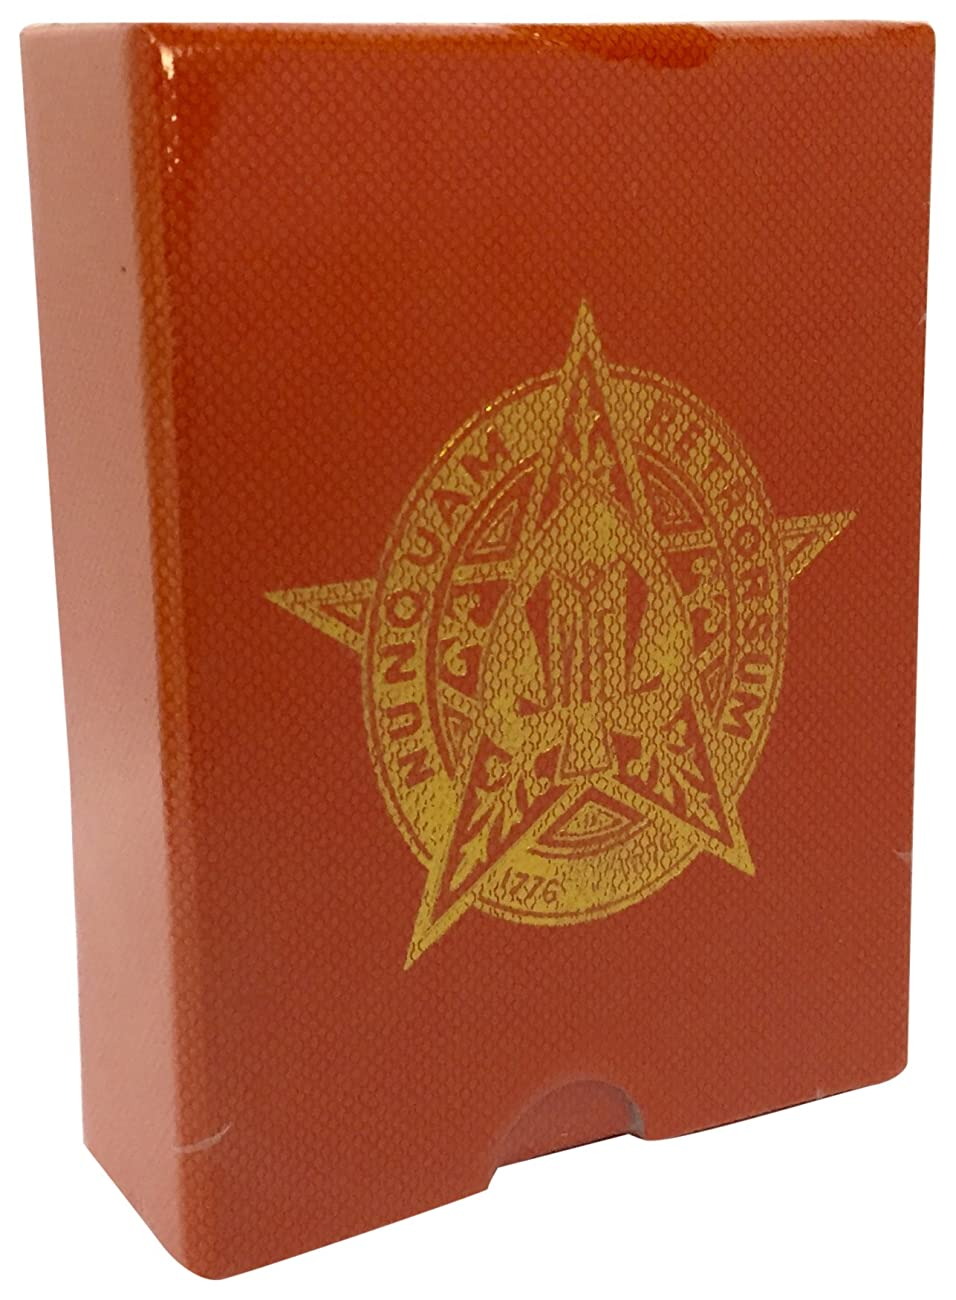 Victor E. Mauger 1876 Mauger Centennial Exposition Replica Playing Cards 0